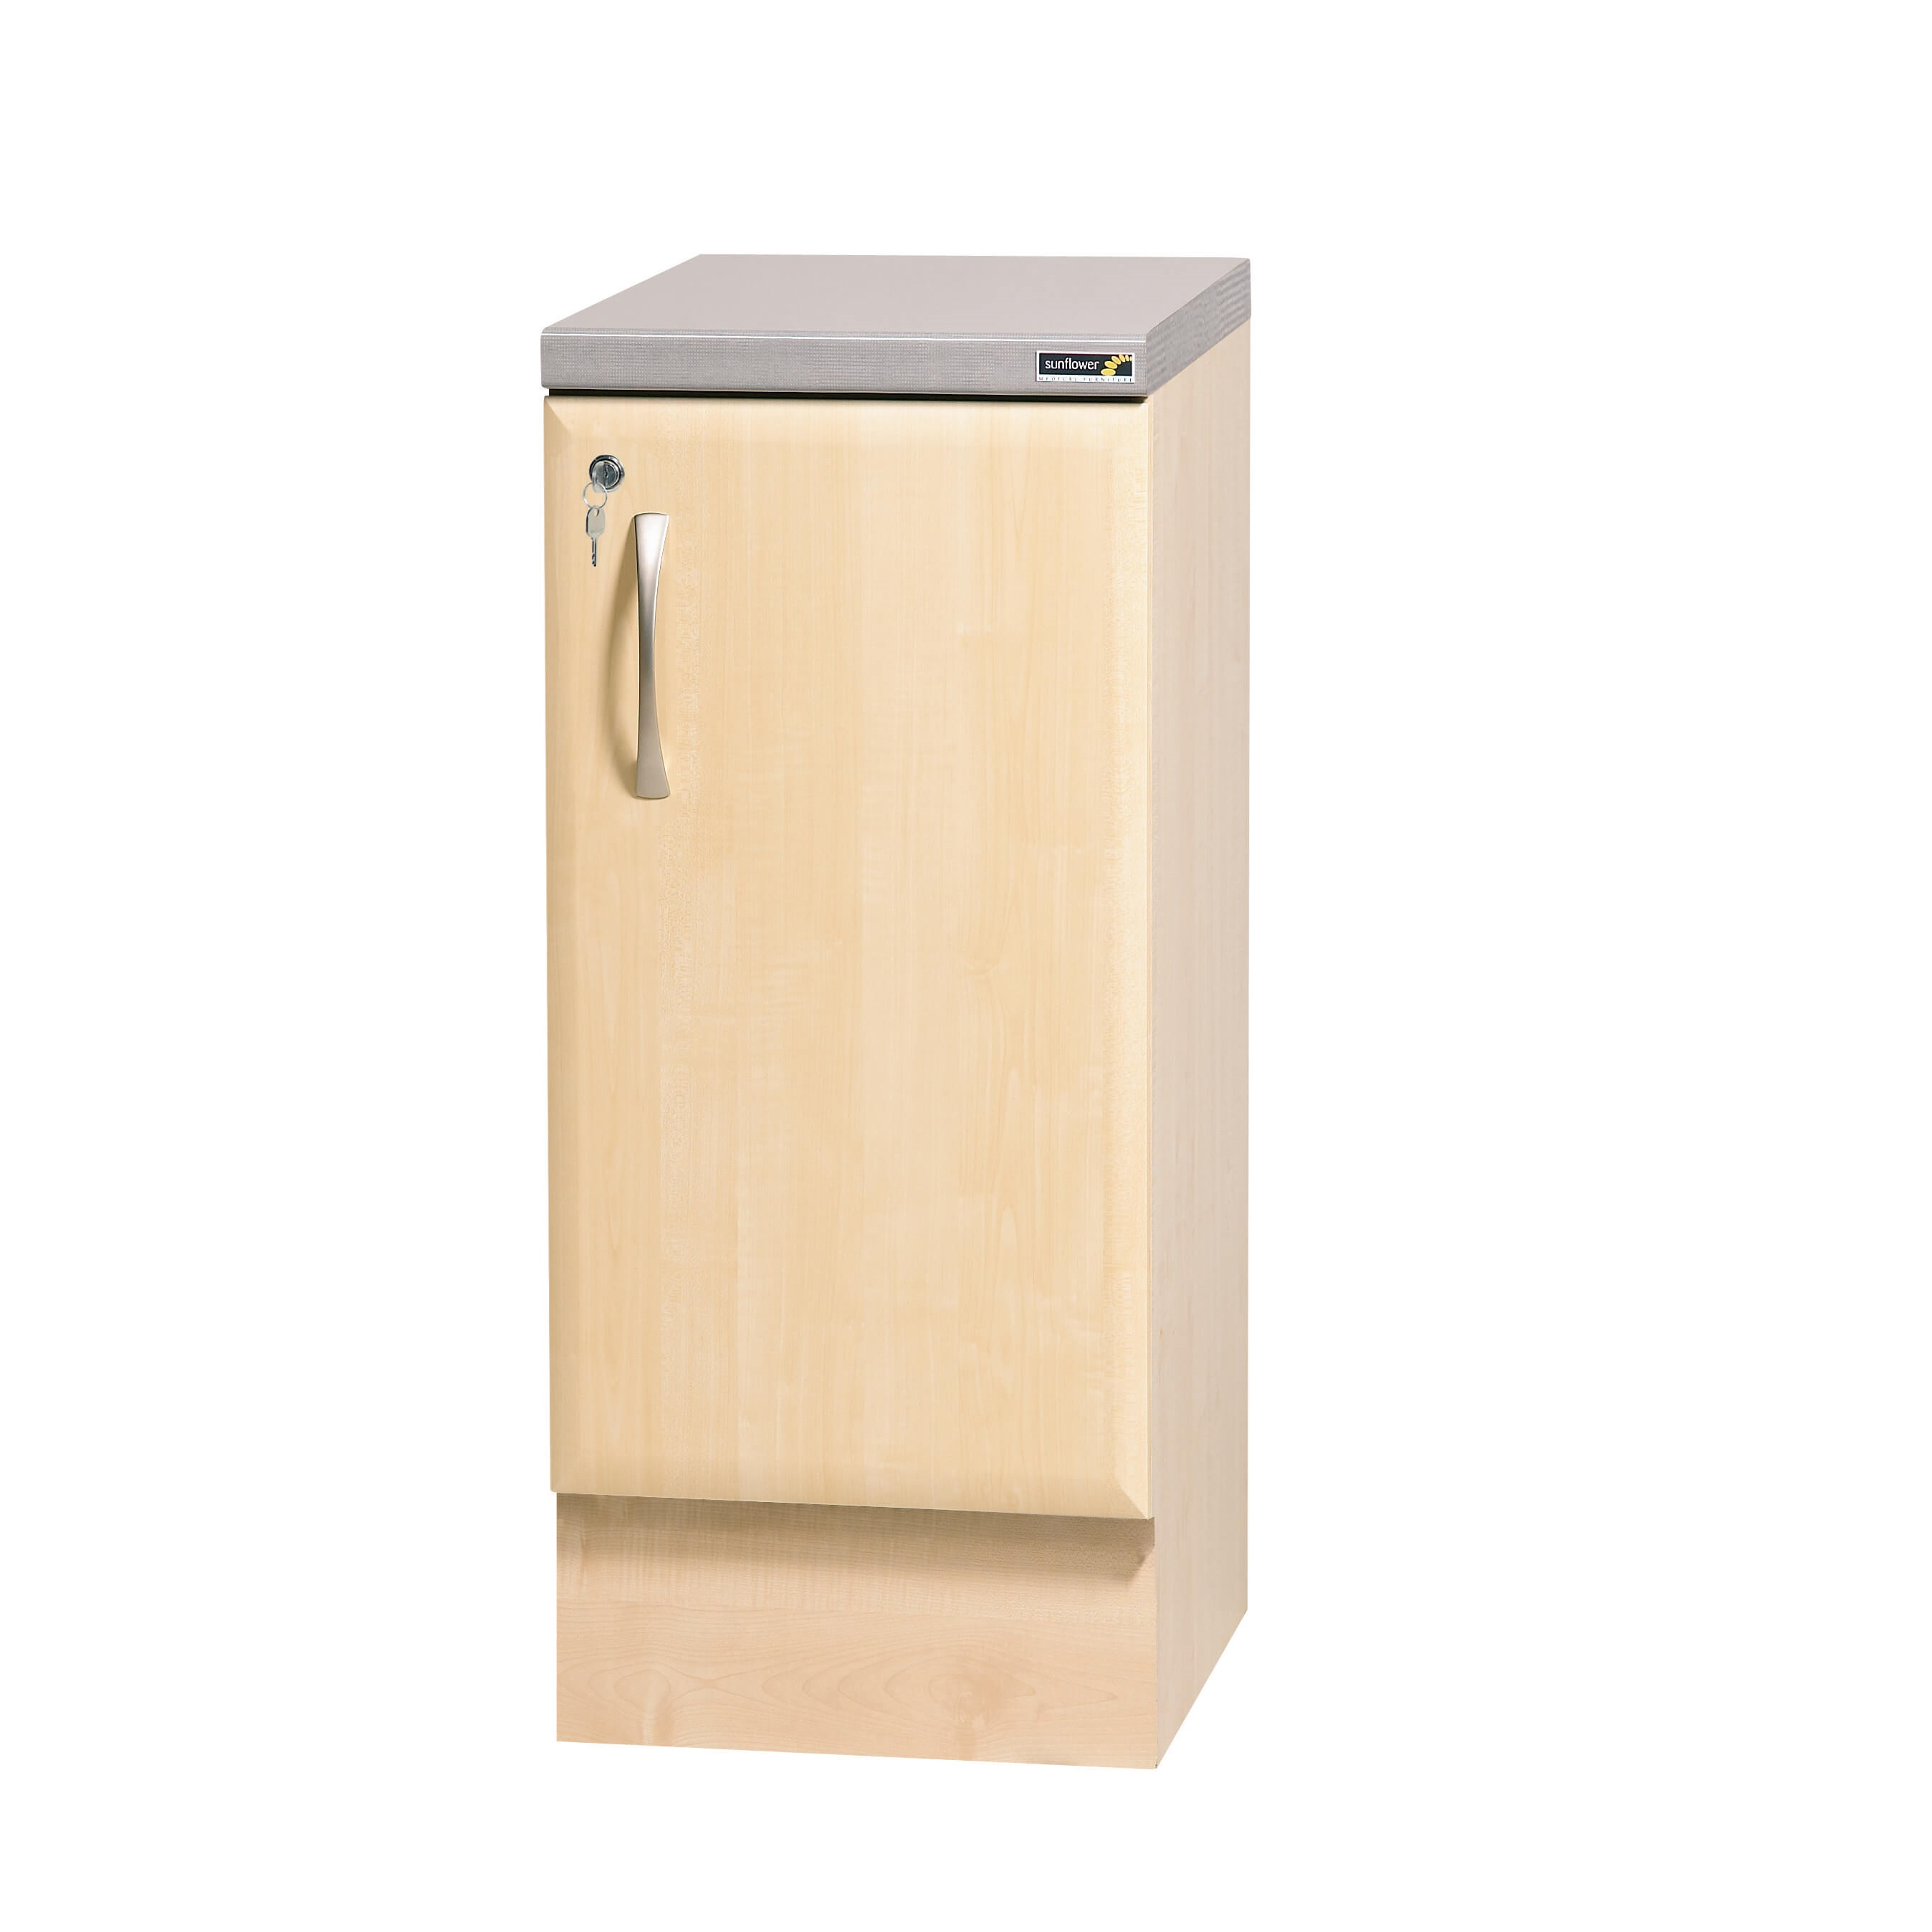 30cm base cabinet maple finish sun bu8m sunflower for 50cm deep kitchen units